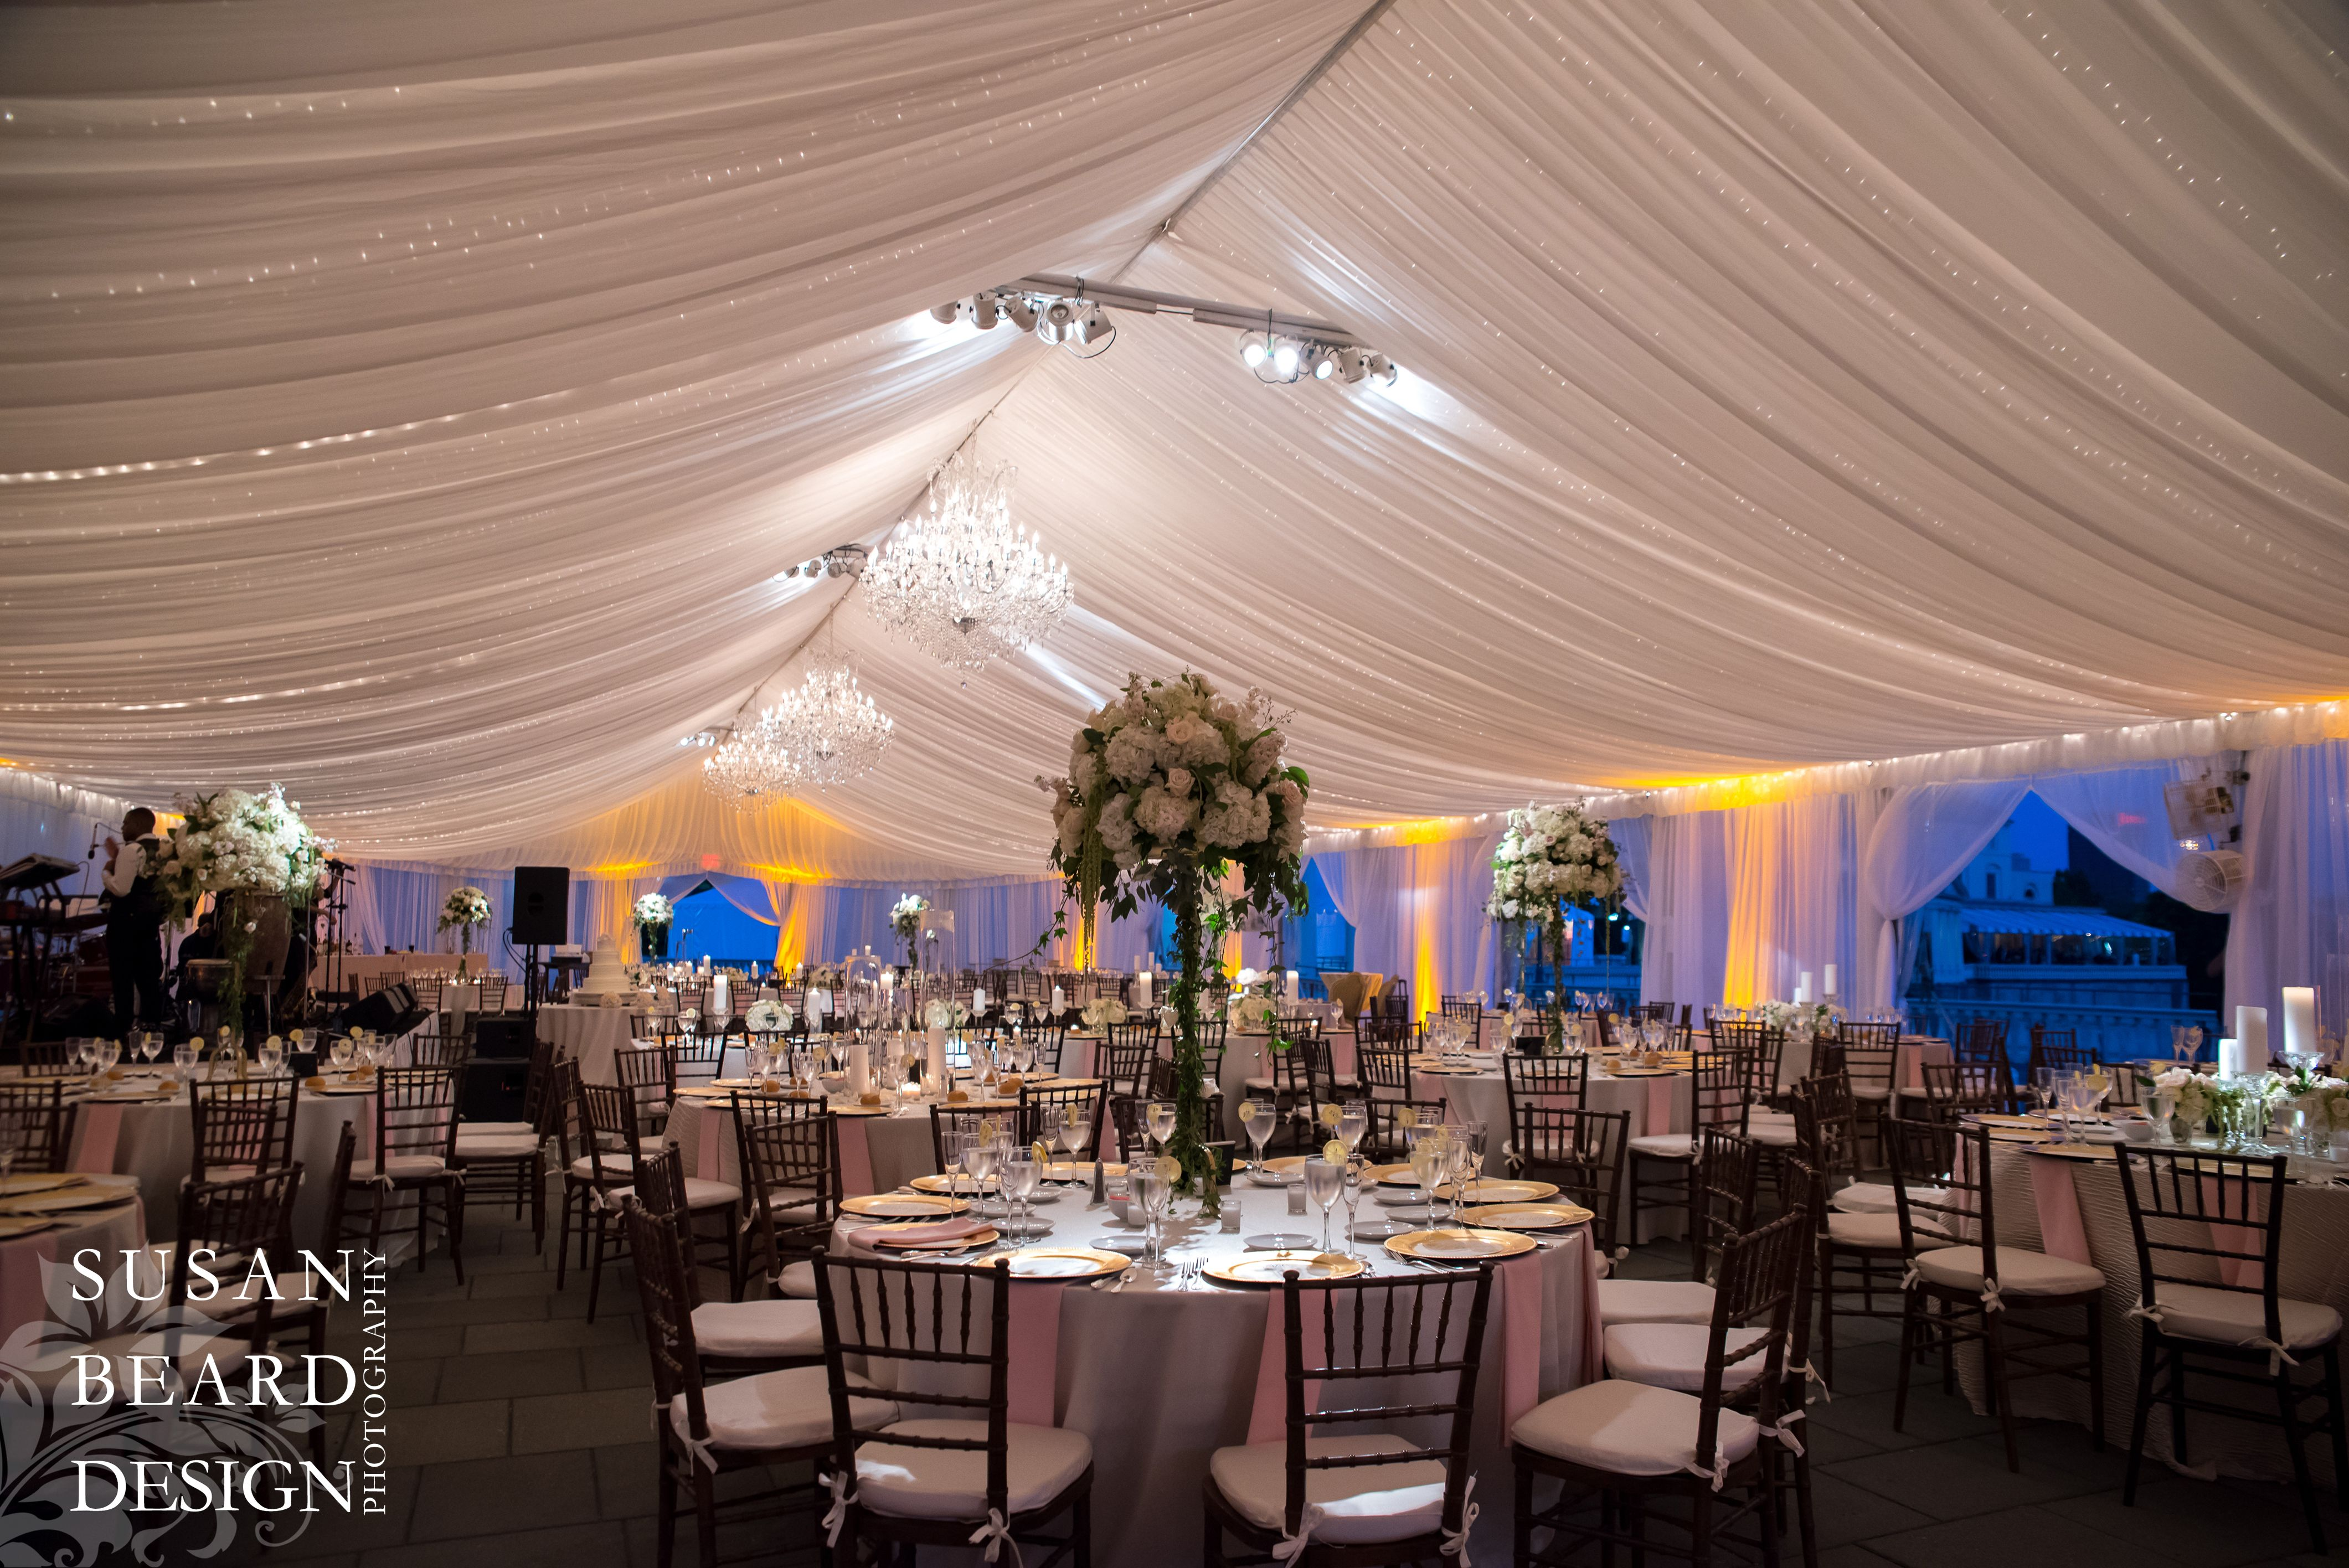 best wedding reception halls in nyc%0A apa format resume